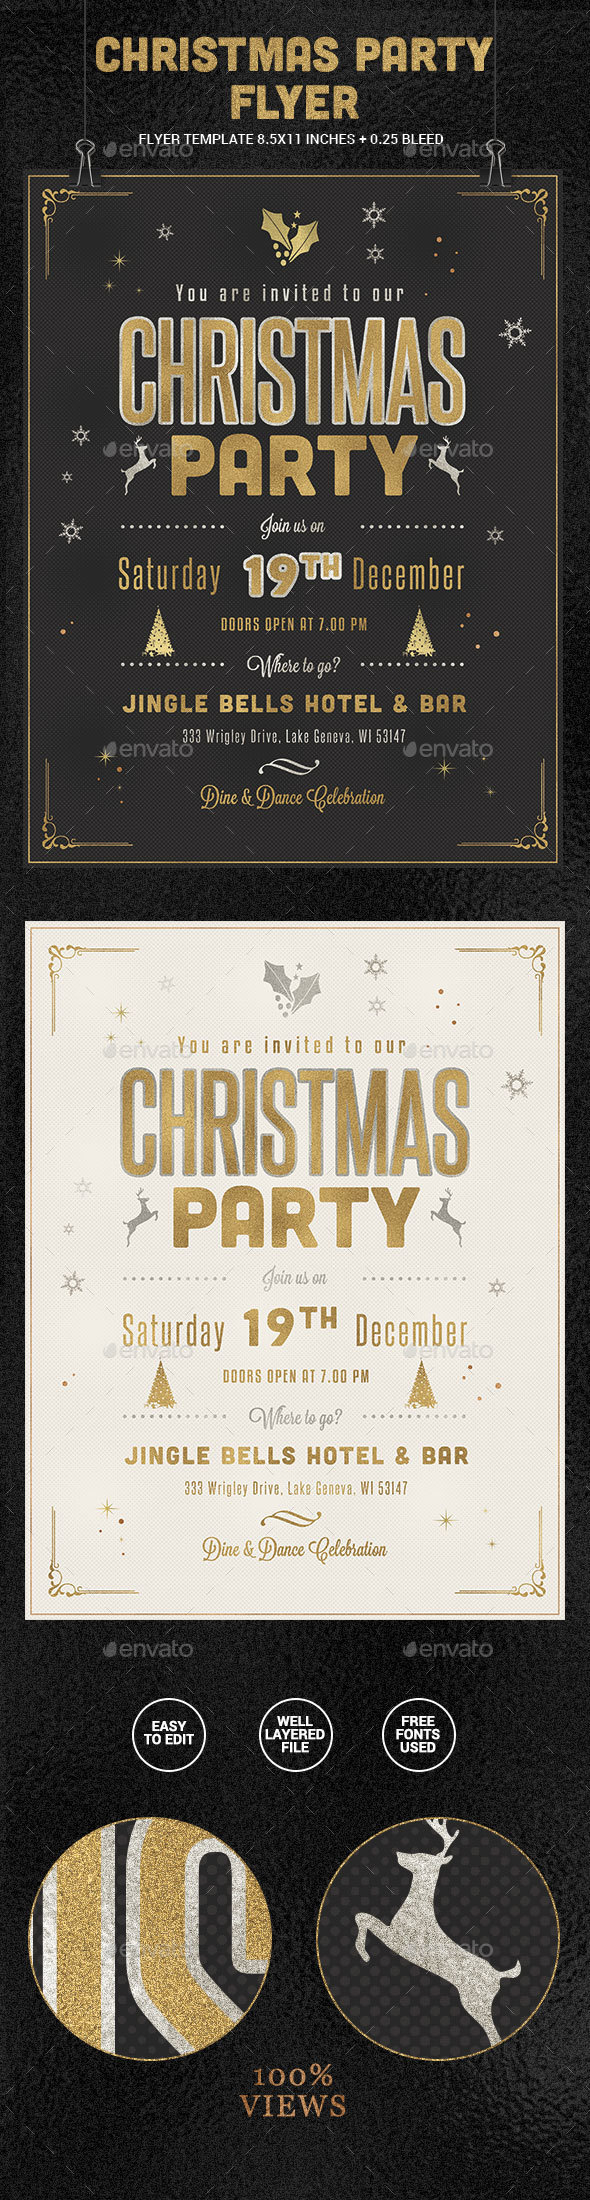 Golden Christmas Party Flyer - Holidays Events